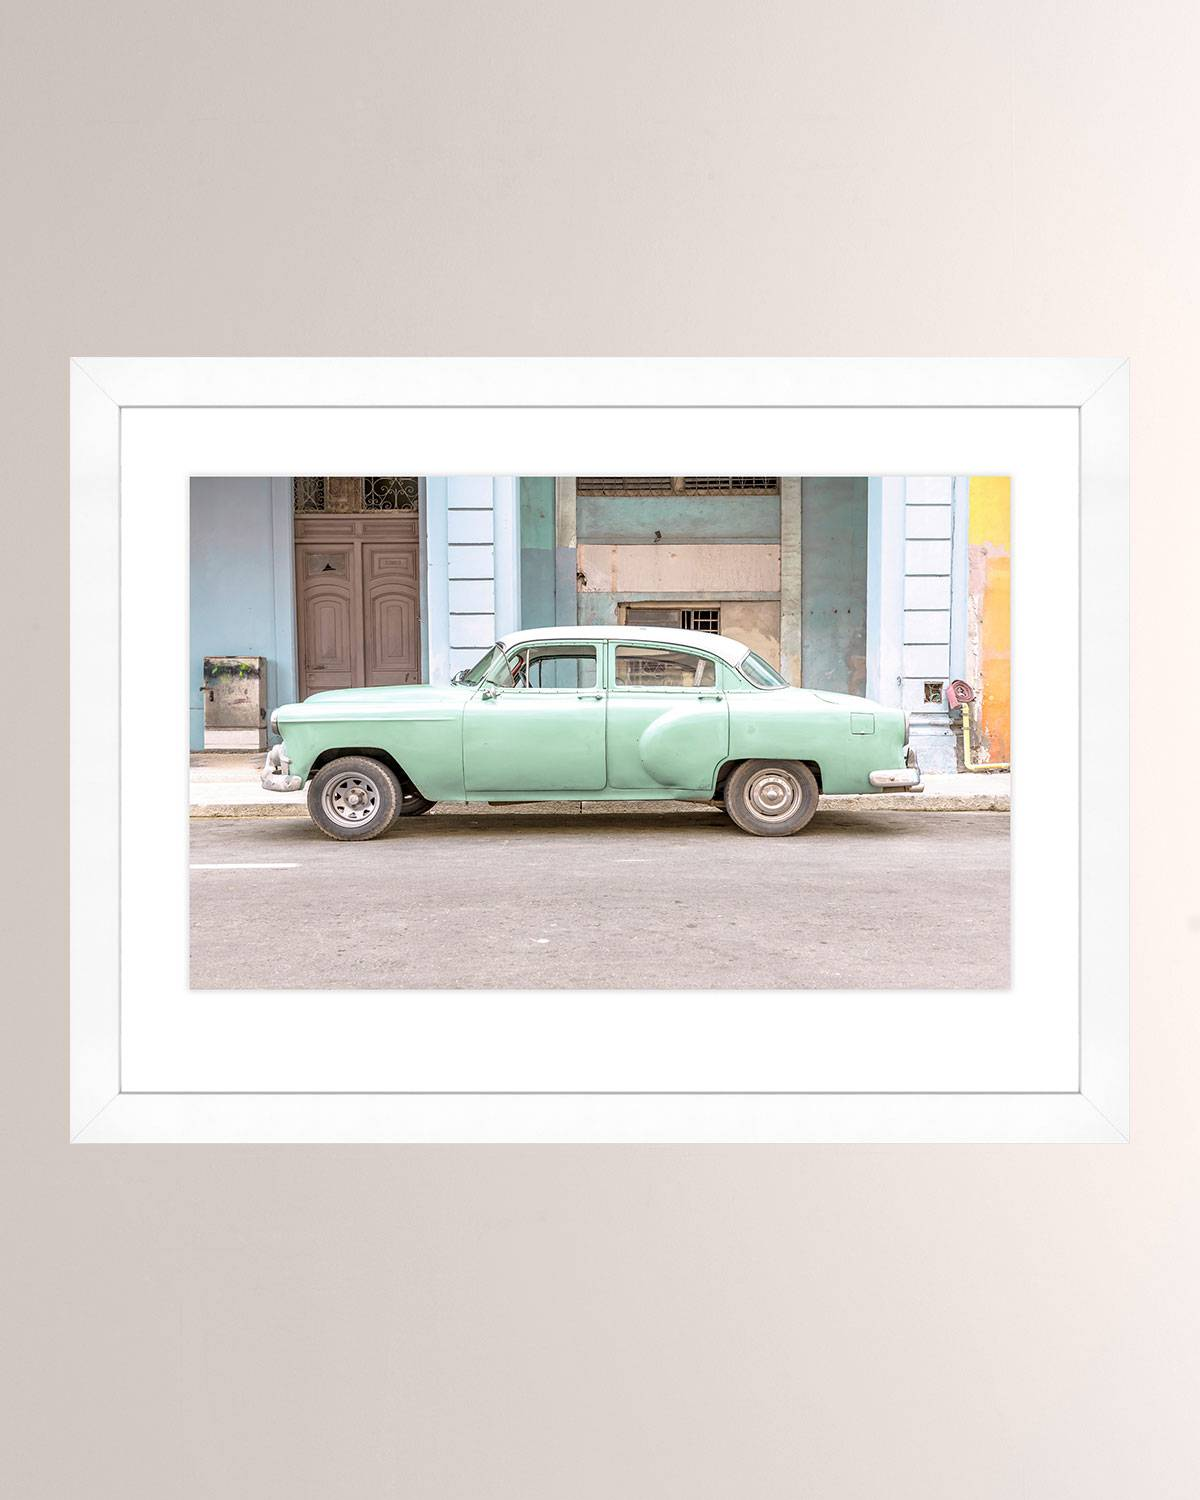 Green Cuban Car Giclee Photo On Paper Wall Art With Frame